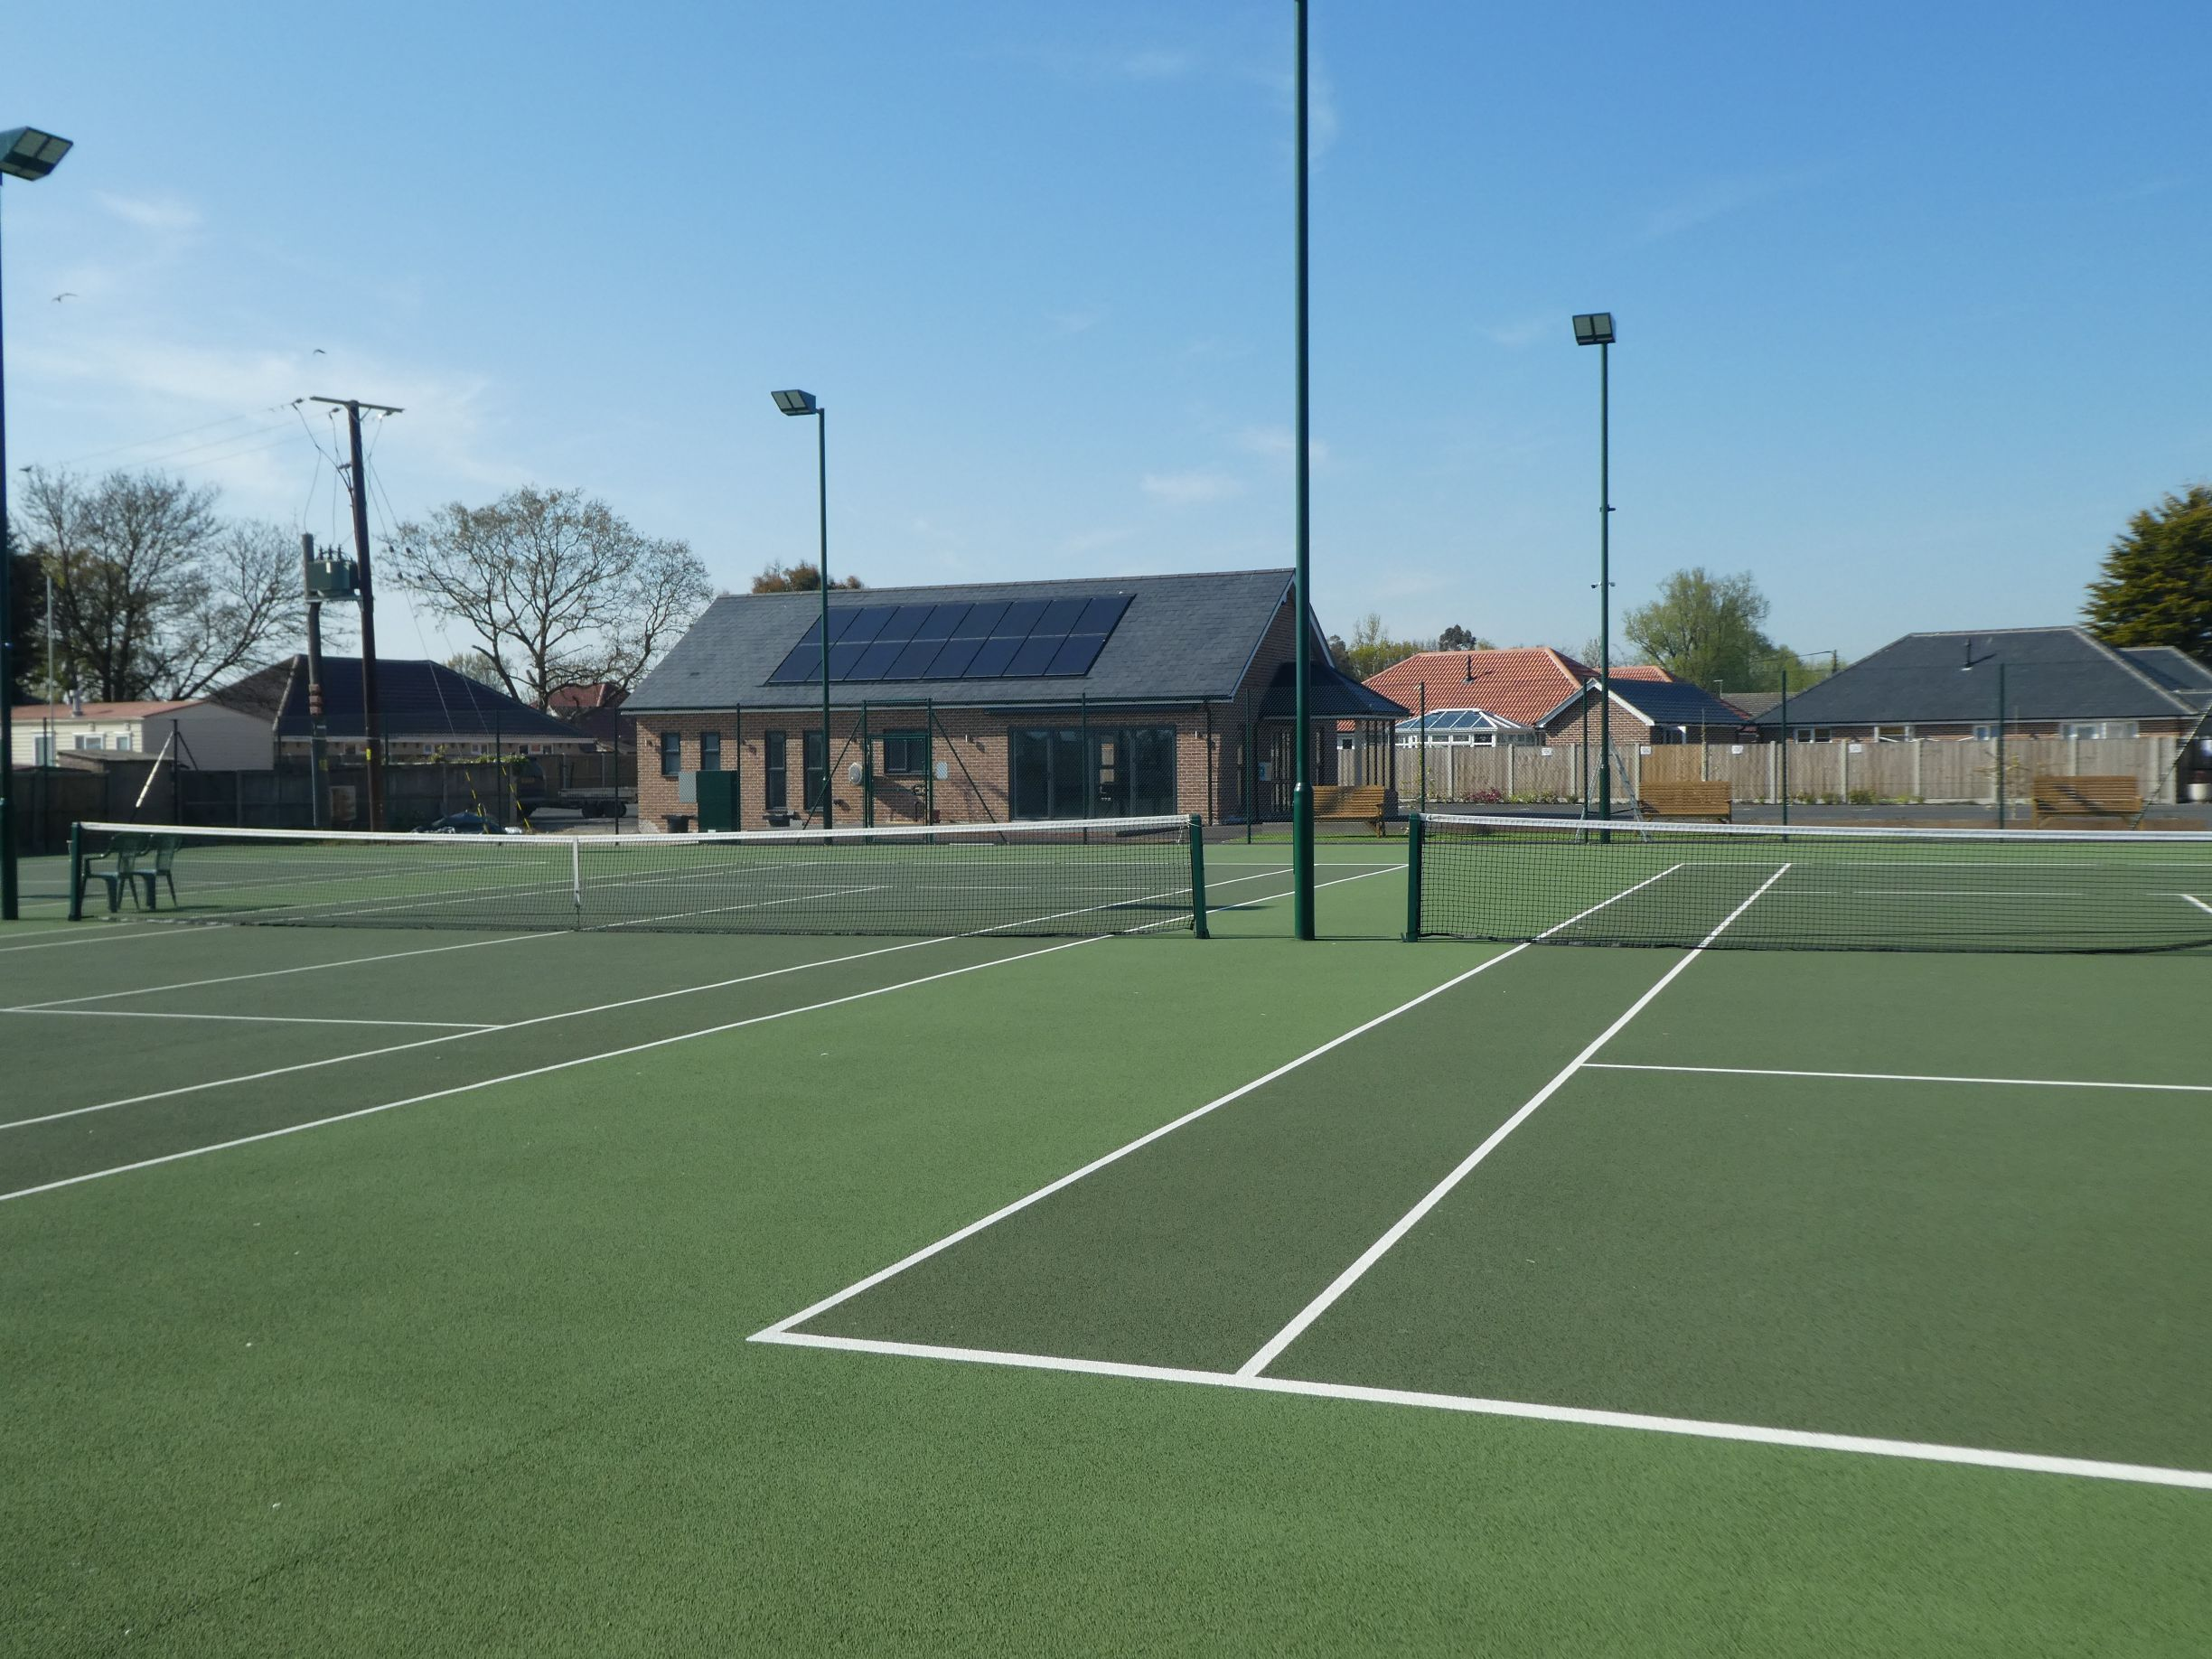 ETC Sports Surfaces delivered four full sized, asphalt tennis court surfaces plus all finishing equipment, including chainlink fencing, floodlighting and nets.